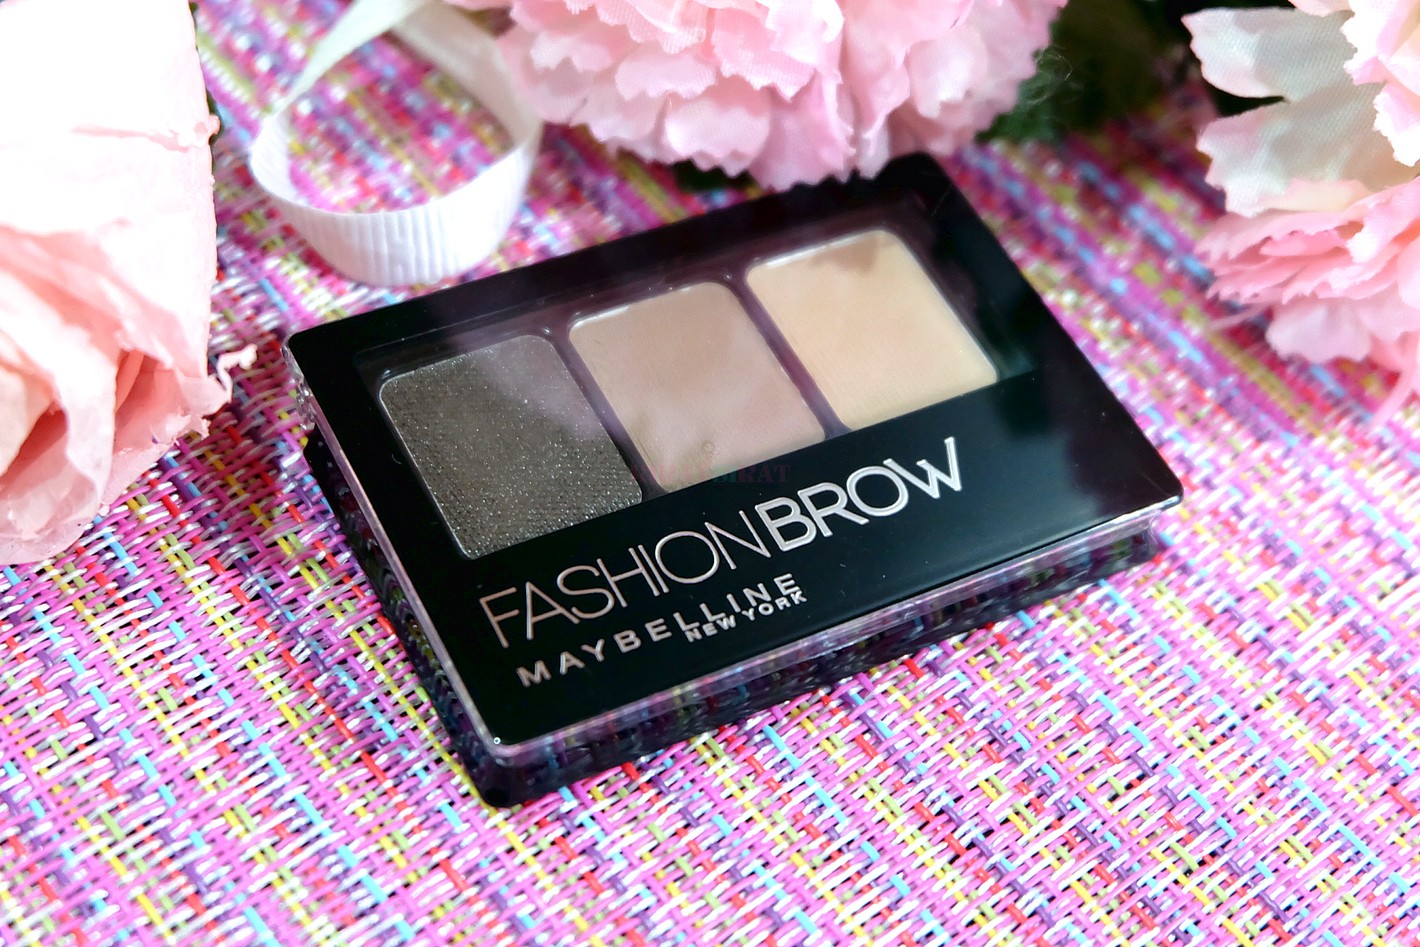 Fashion Brow 3D Contouring Palette Review  Maybelline x